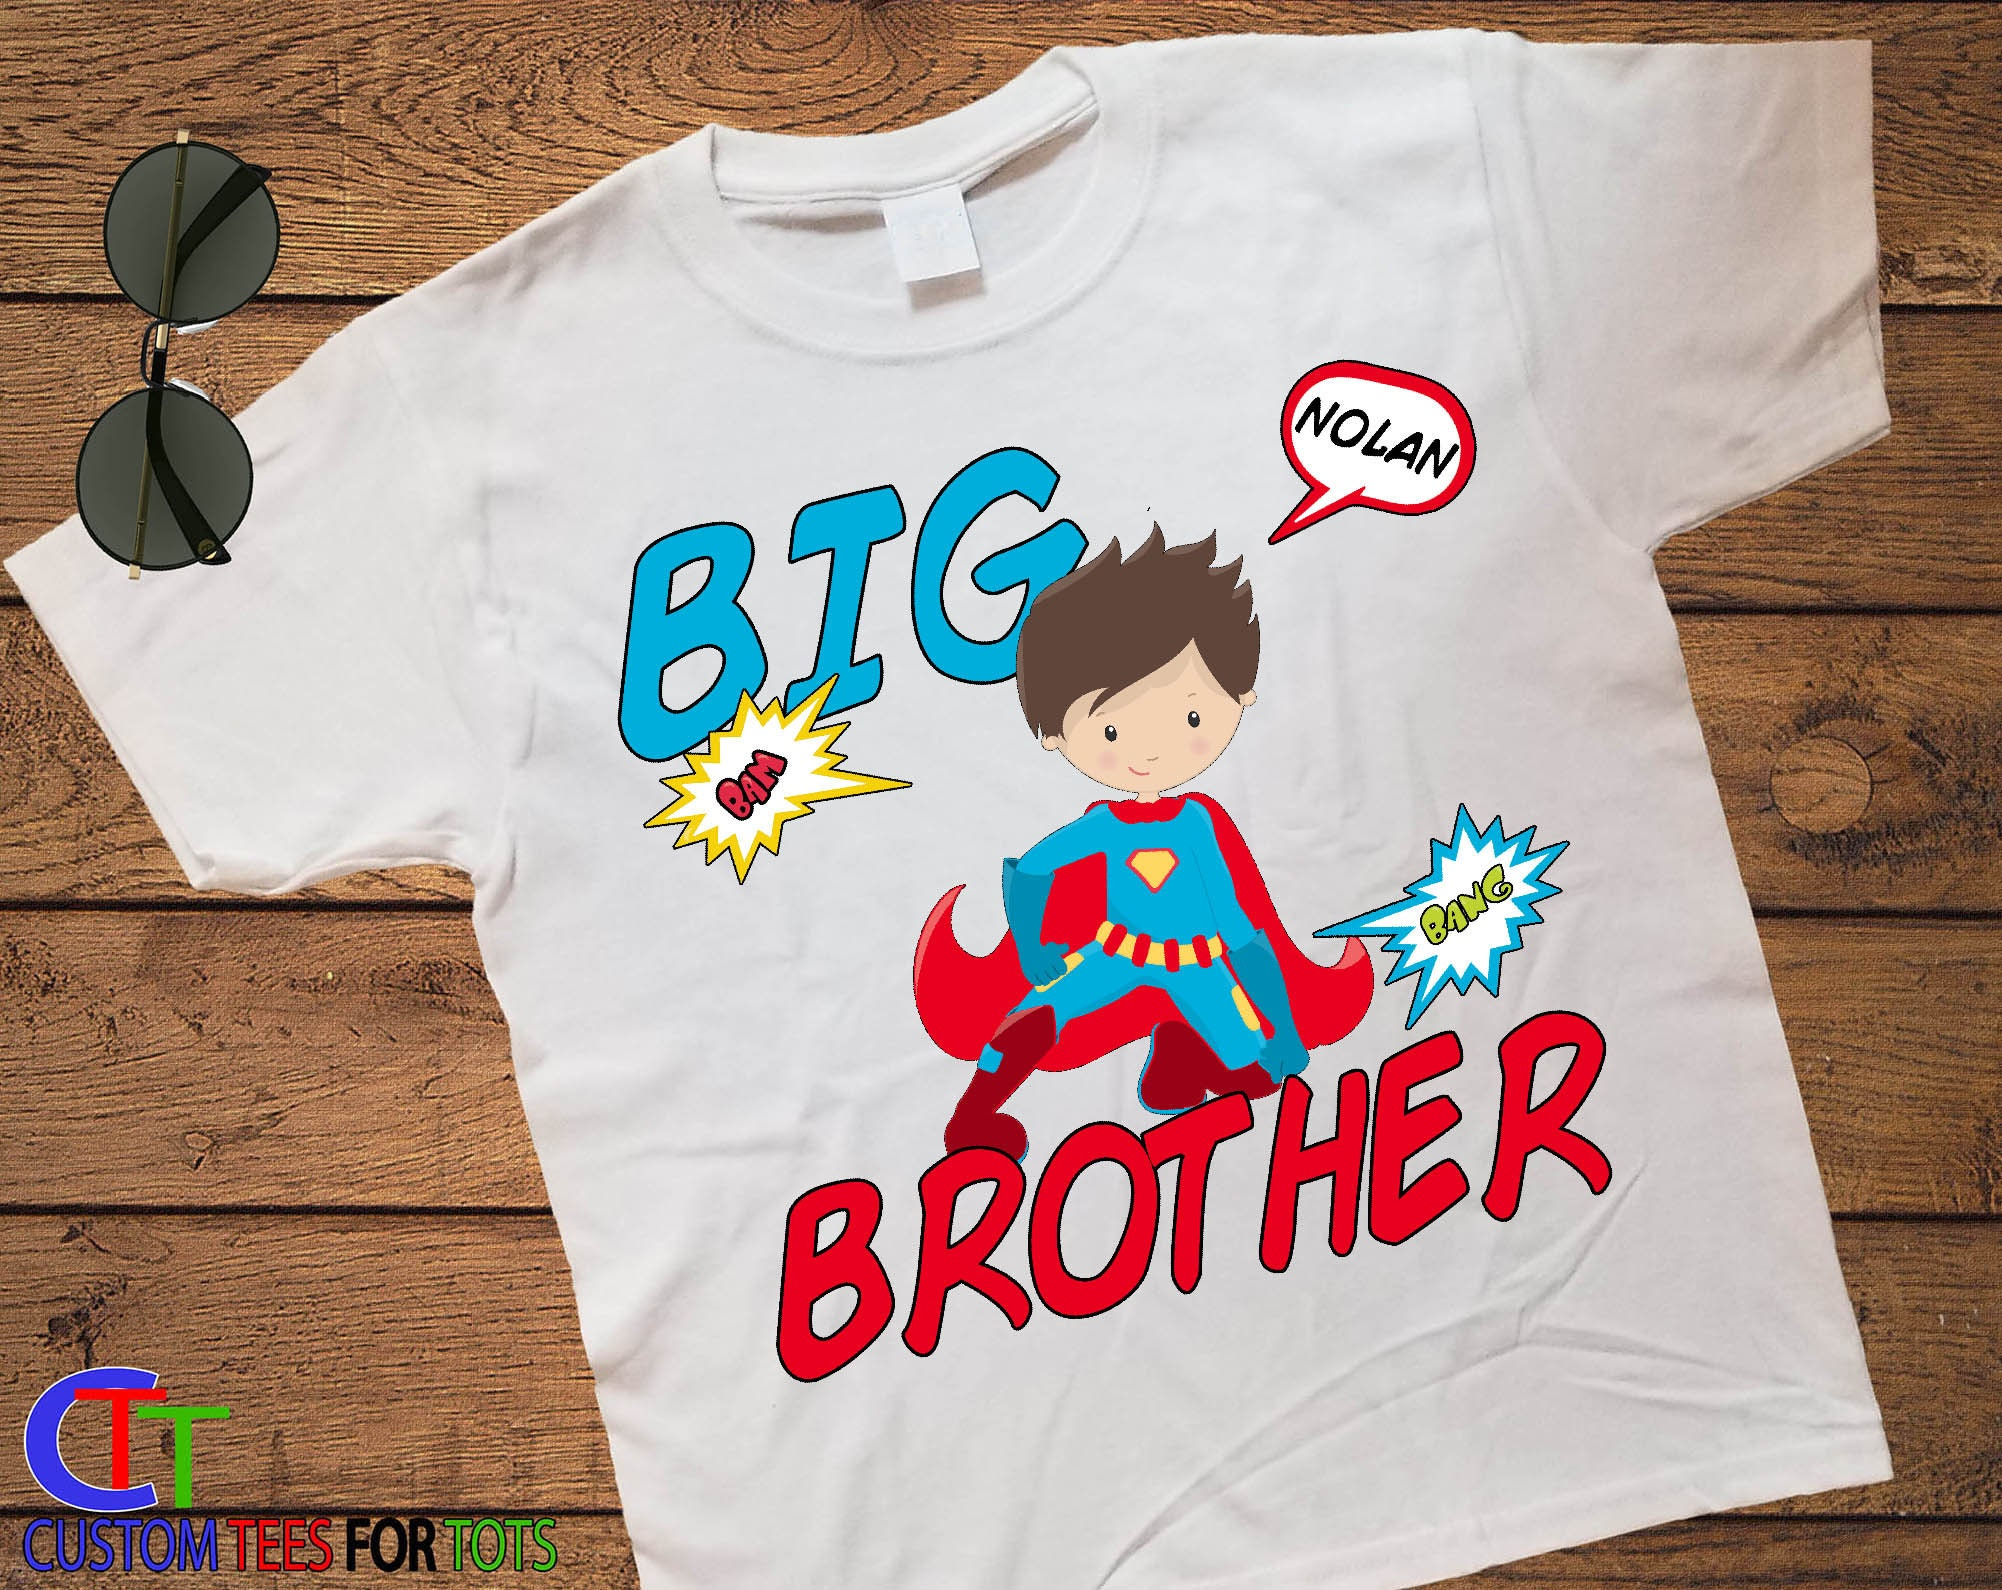 eecc846a ... Superhero Big Brother Shirt - Big Little Brother Announcement Shirt.  gallery photo gallery photo